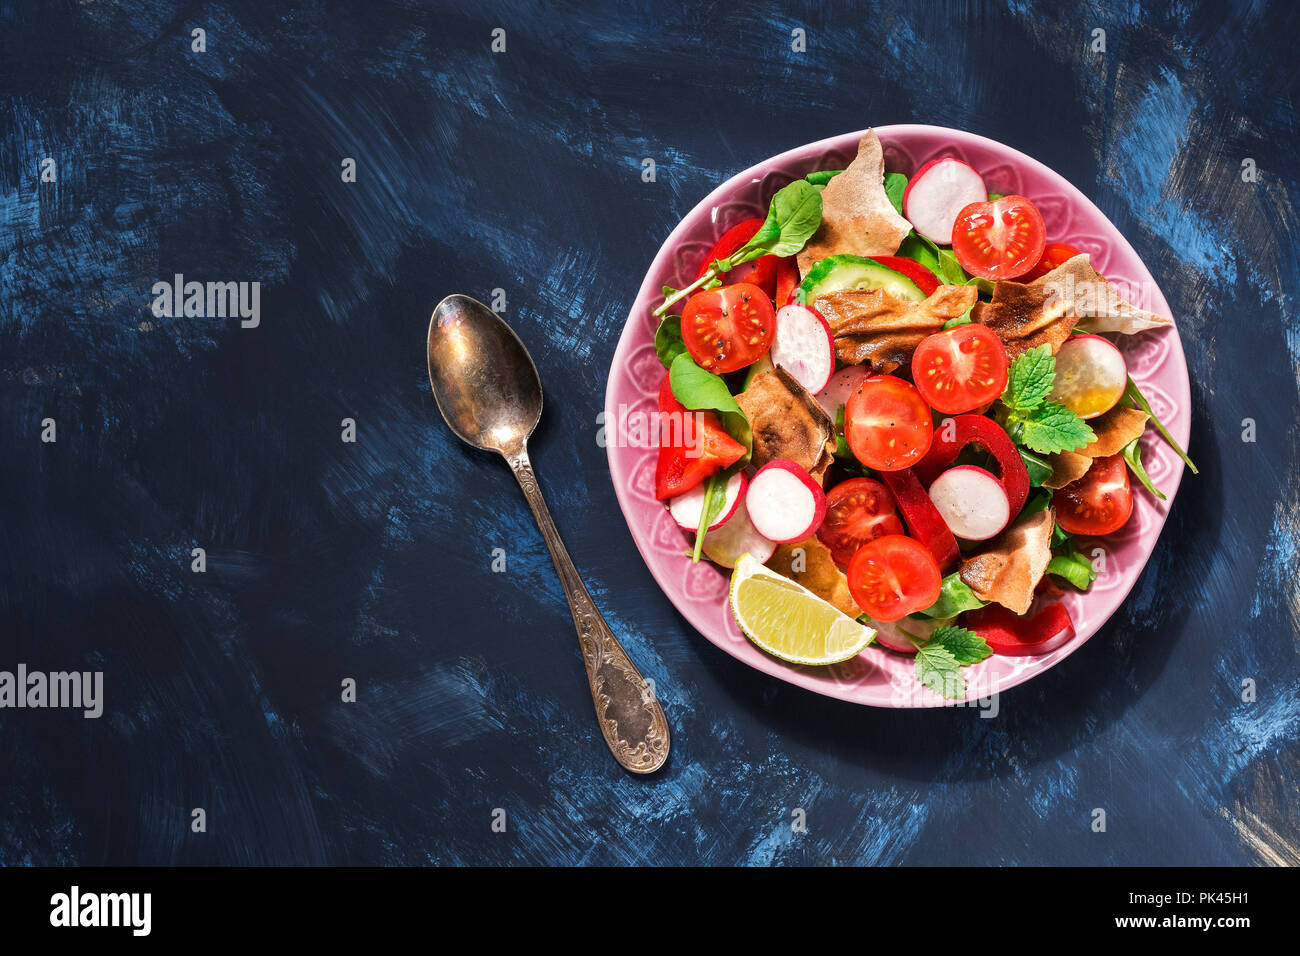 Arabic salad of fresh vegetables with bread Fattoush on a blue background. Top view, copy space. Stock Photo